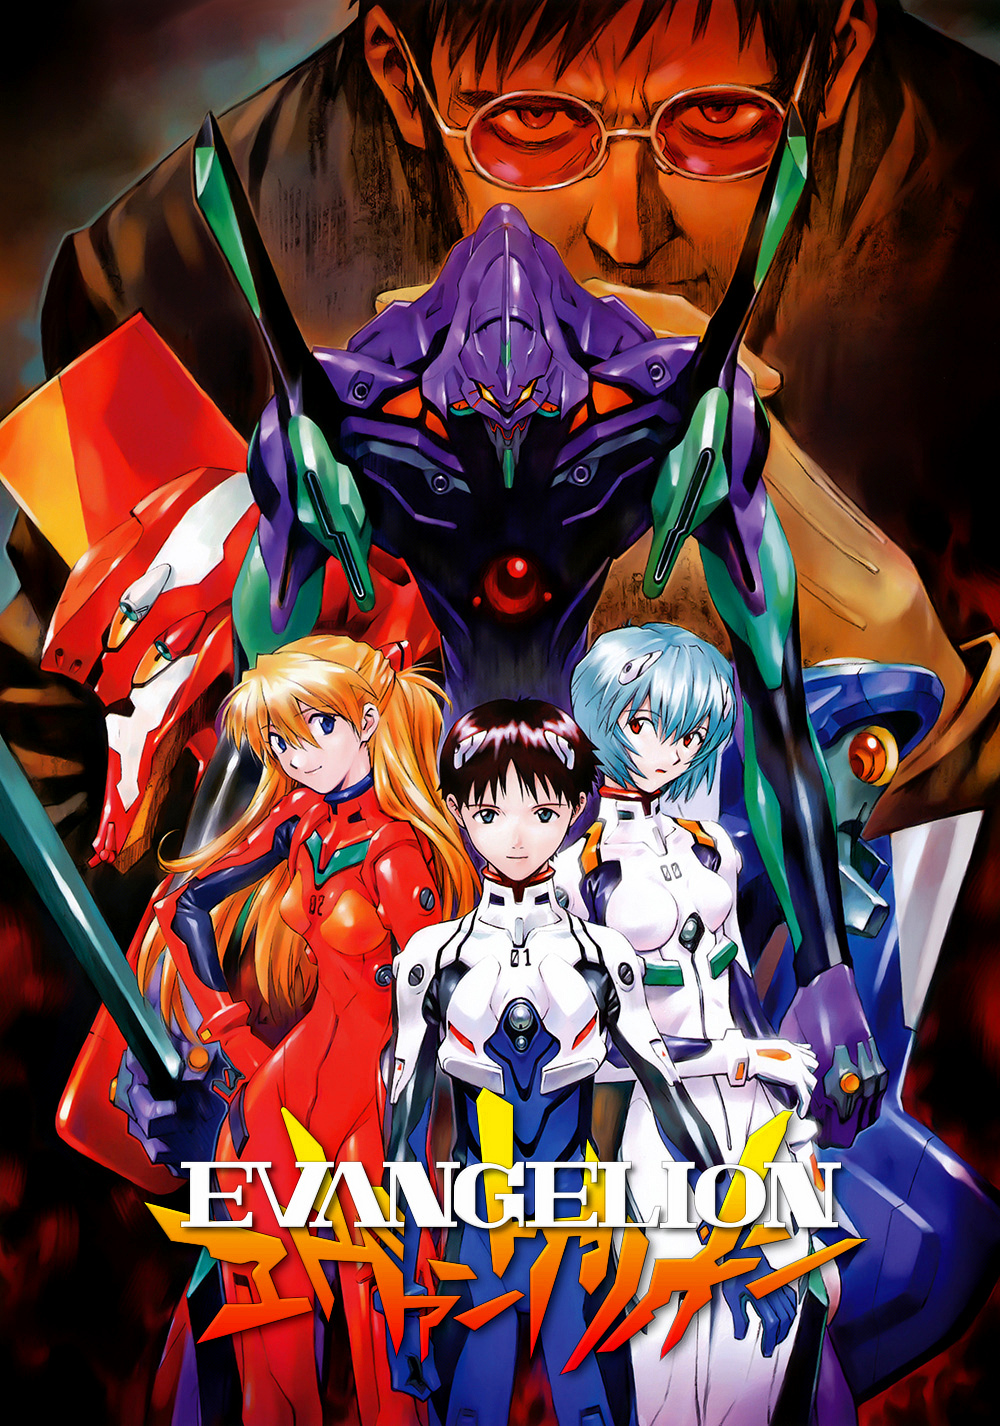 ¿Evangelion? Latest?cb=20160509190410&path-prefix=es